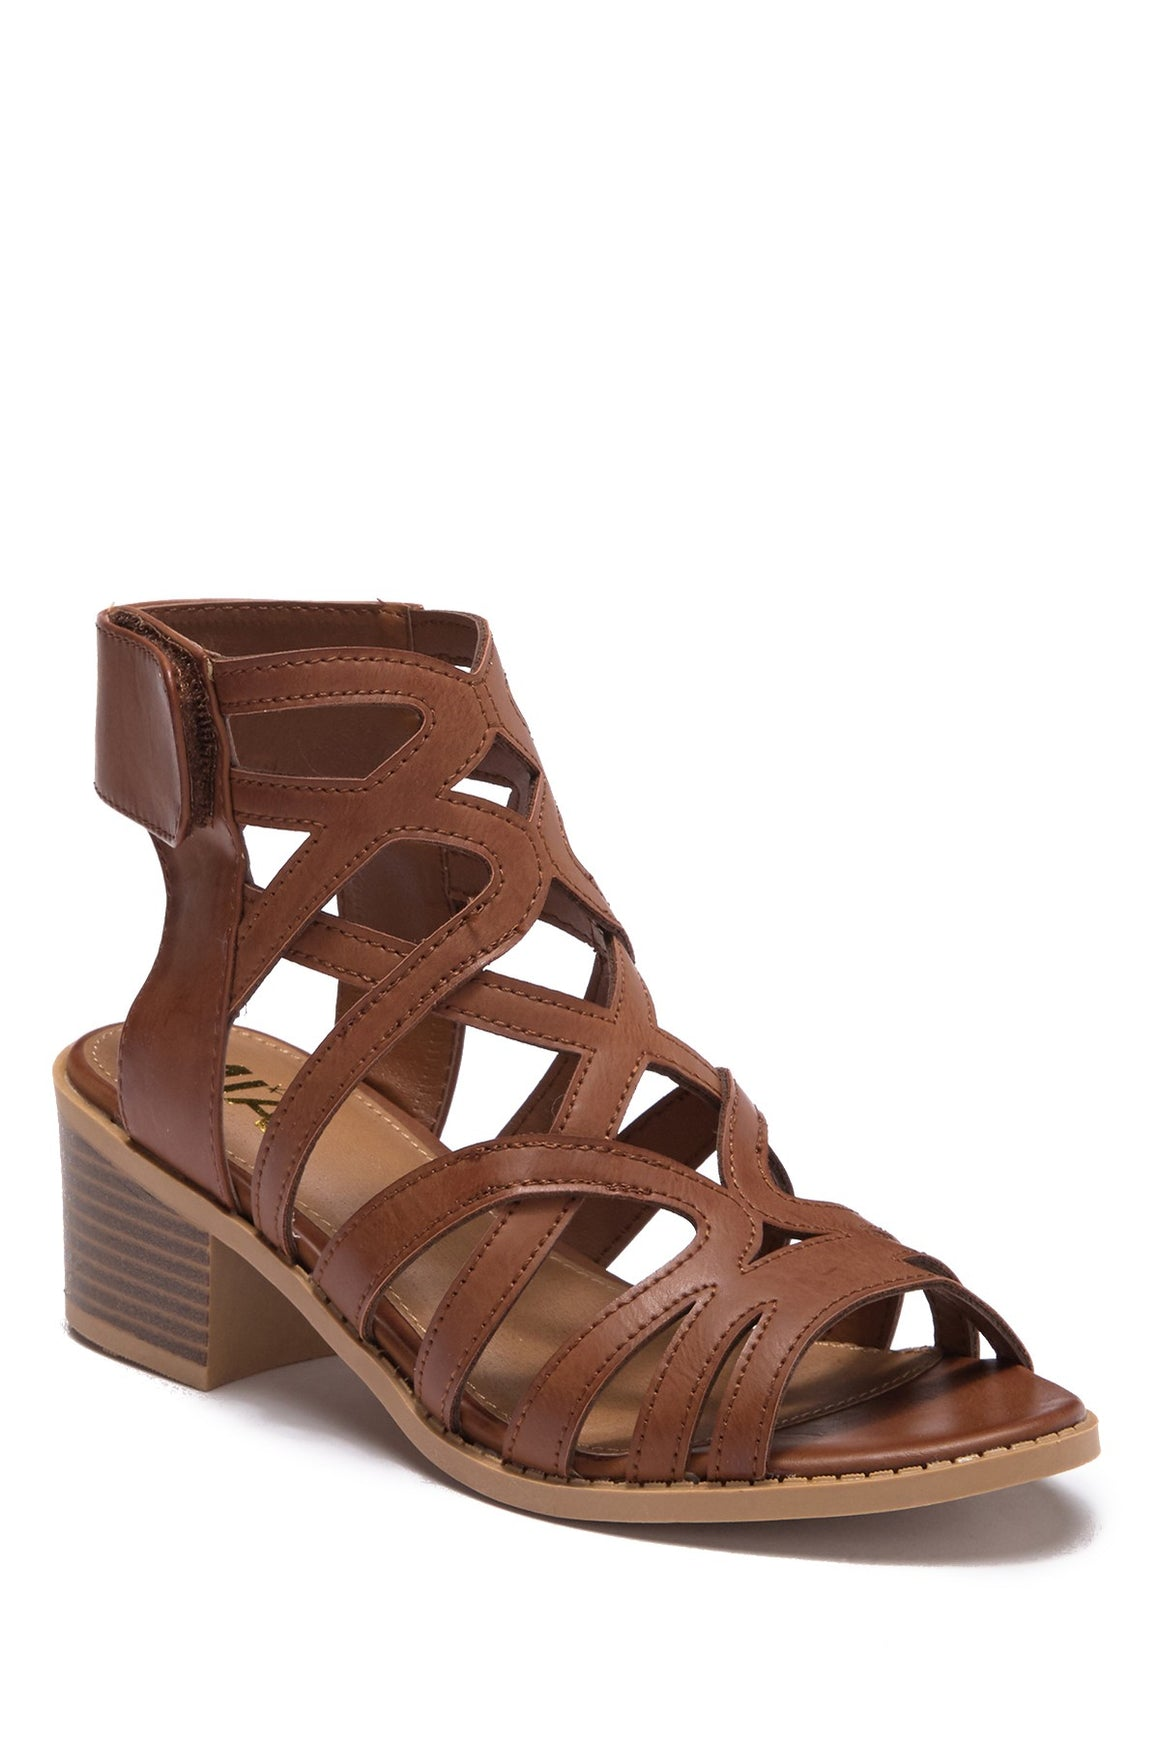 MIA Kid's Emilie Block Heeled Sandal - Tan CSK286